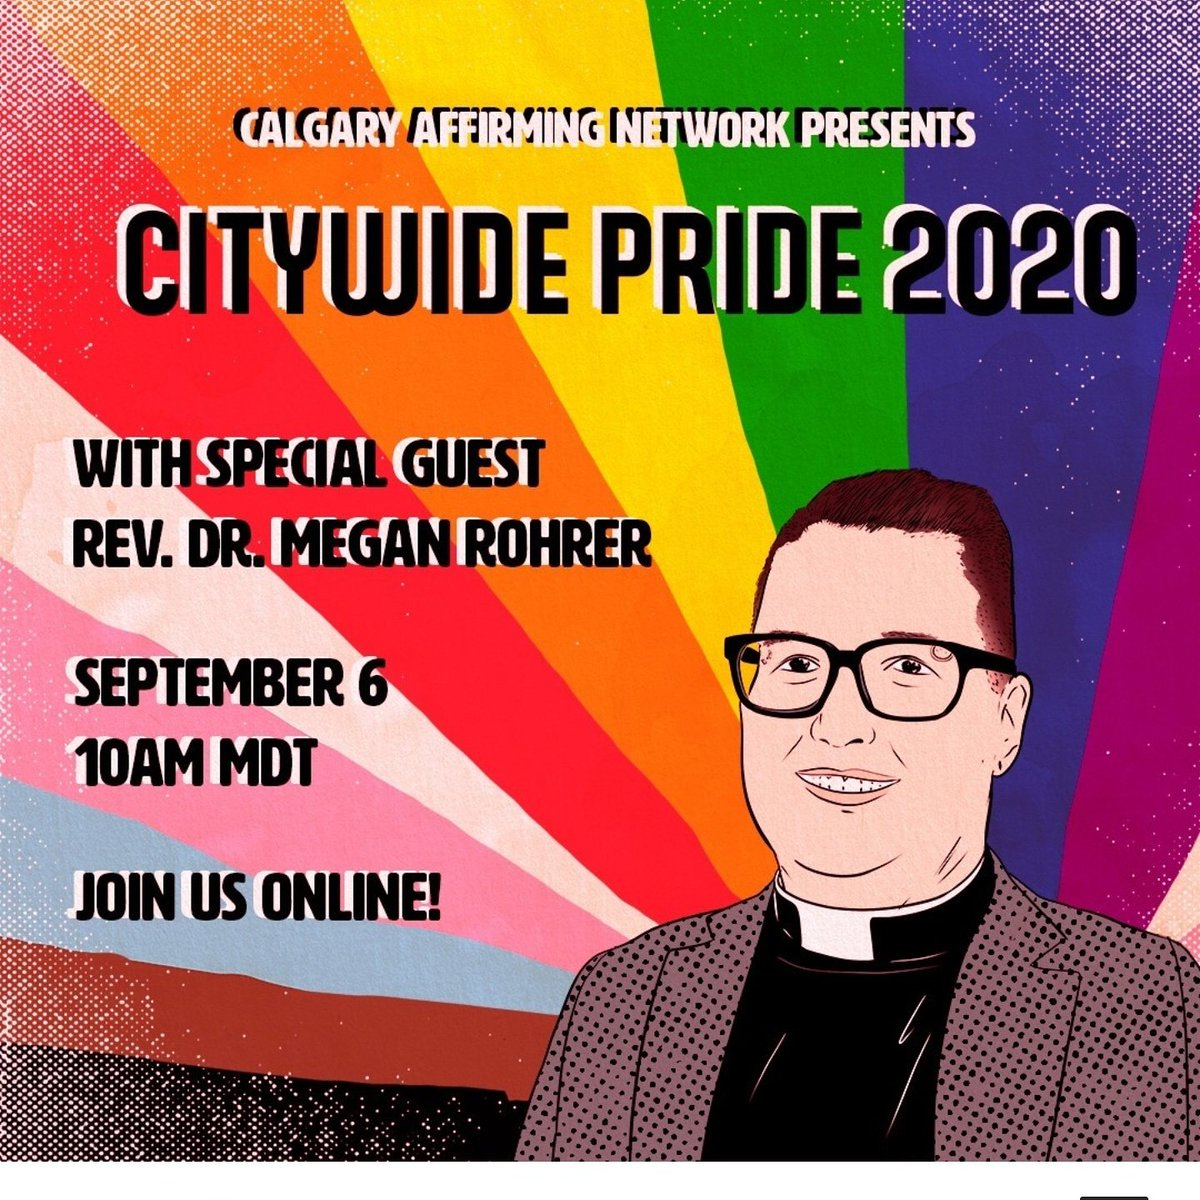 Don't forget to check out the city wide Pride Service. The service will be livestreamed on the Affirming Connections Facebook page at 10 am.  #yyc #pridemonth2020 #affirming https://t.co/xFZkohCwVj